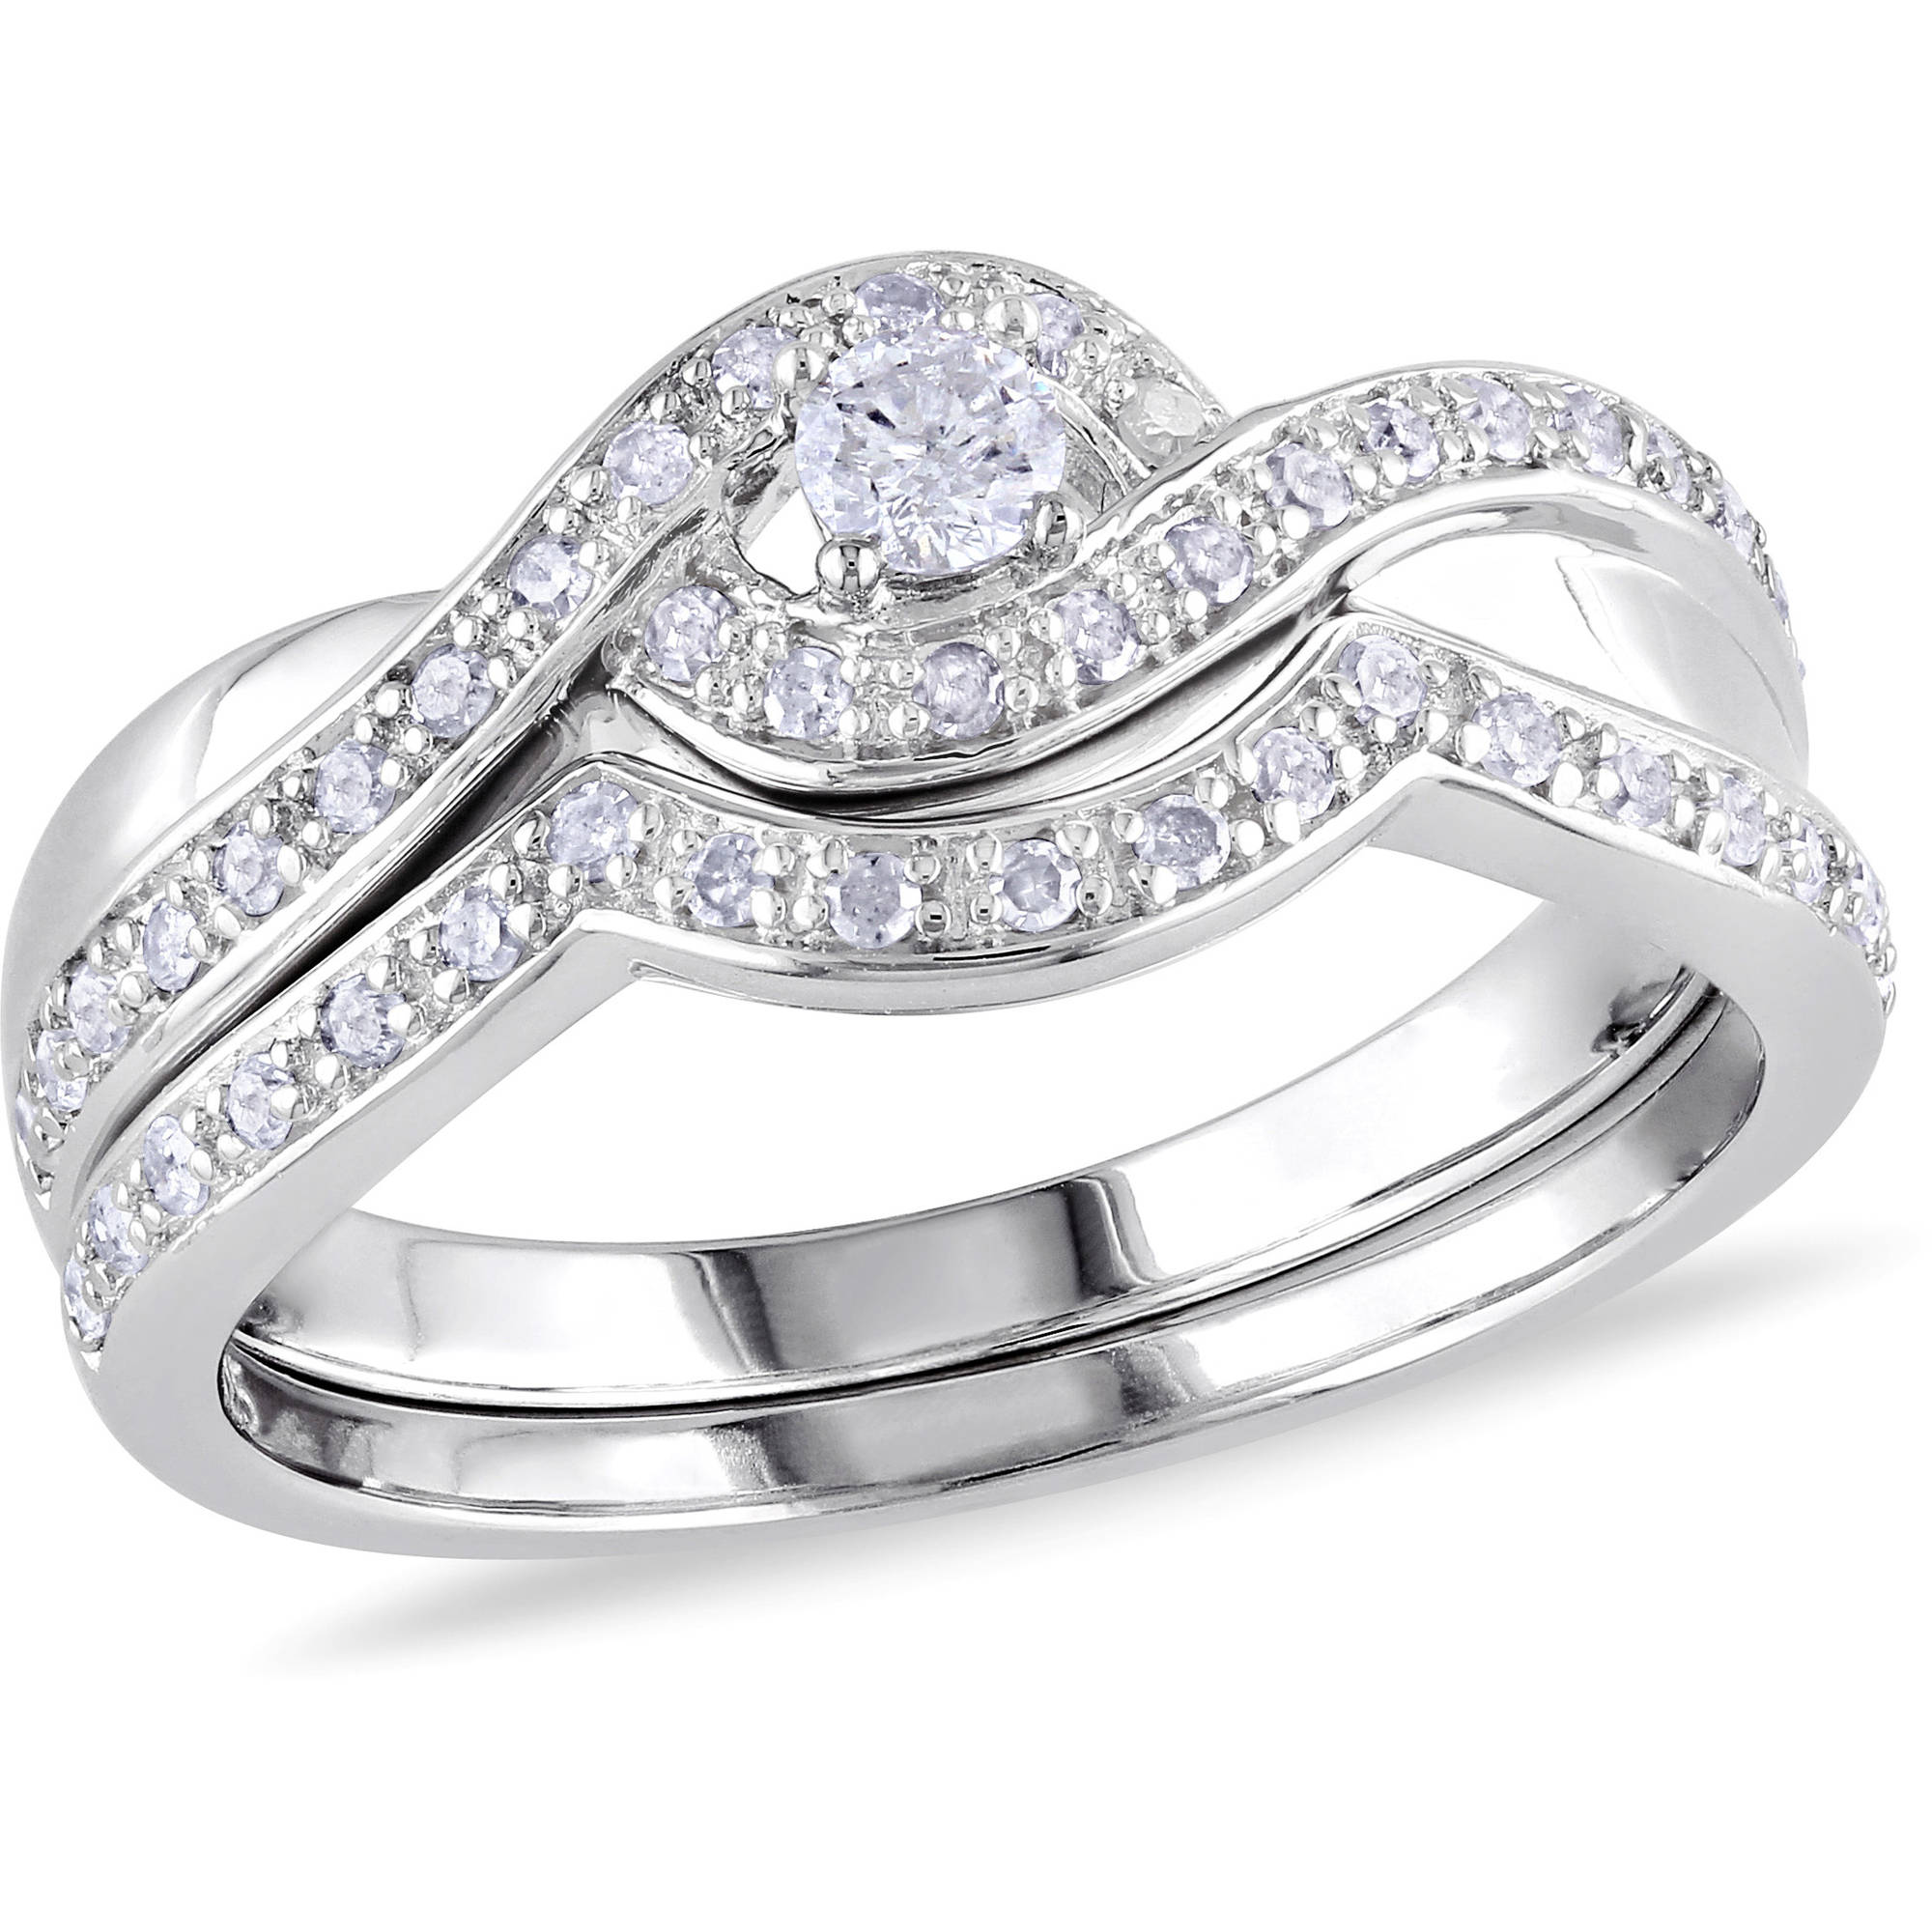 Miabella 1 3 Carat T.W. Diamond Sterling Silver Bypass Bridal Set by Delmar Manufacturing LLC